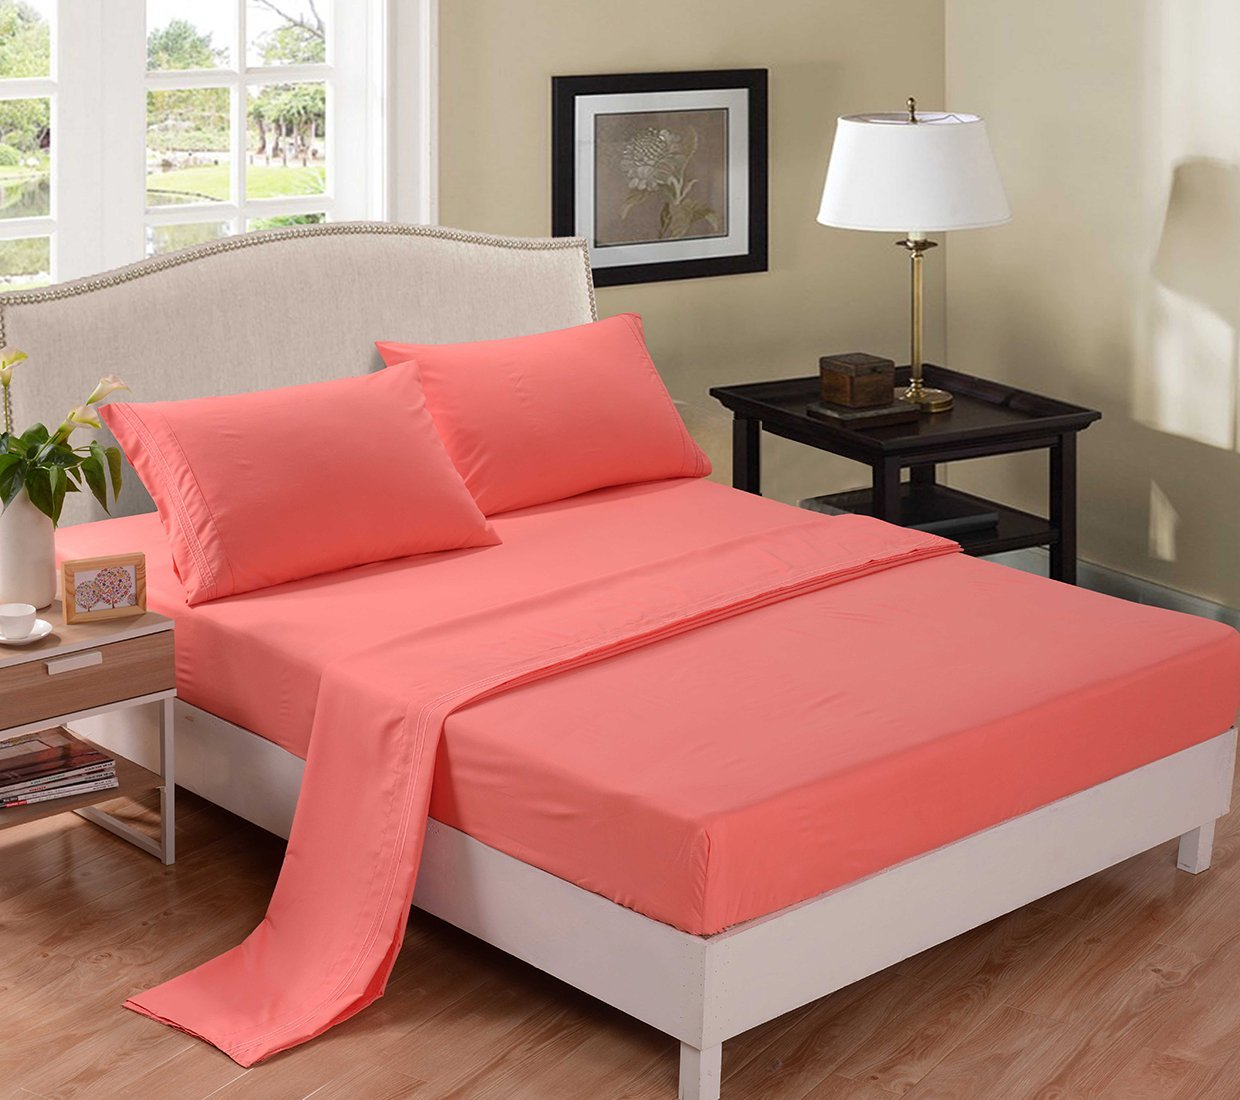 Total fab coral colored comforter and bedding sets for Bed sets with mattress